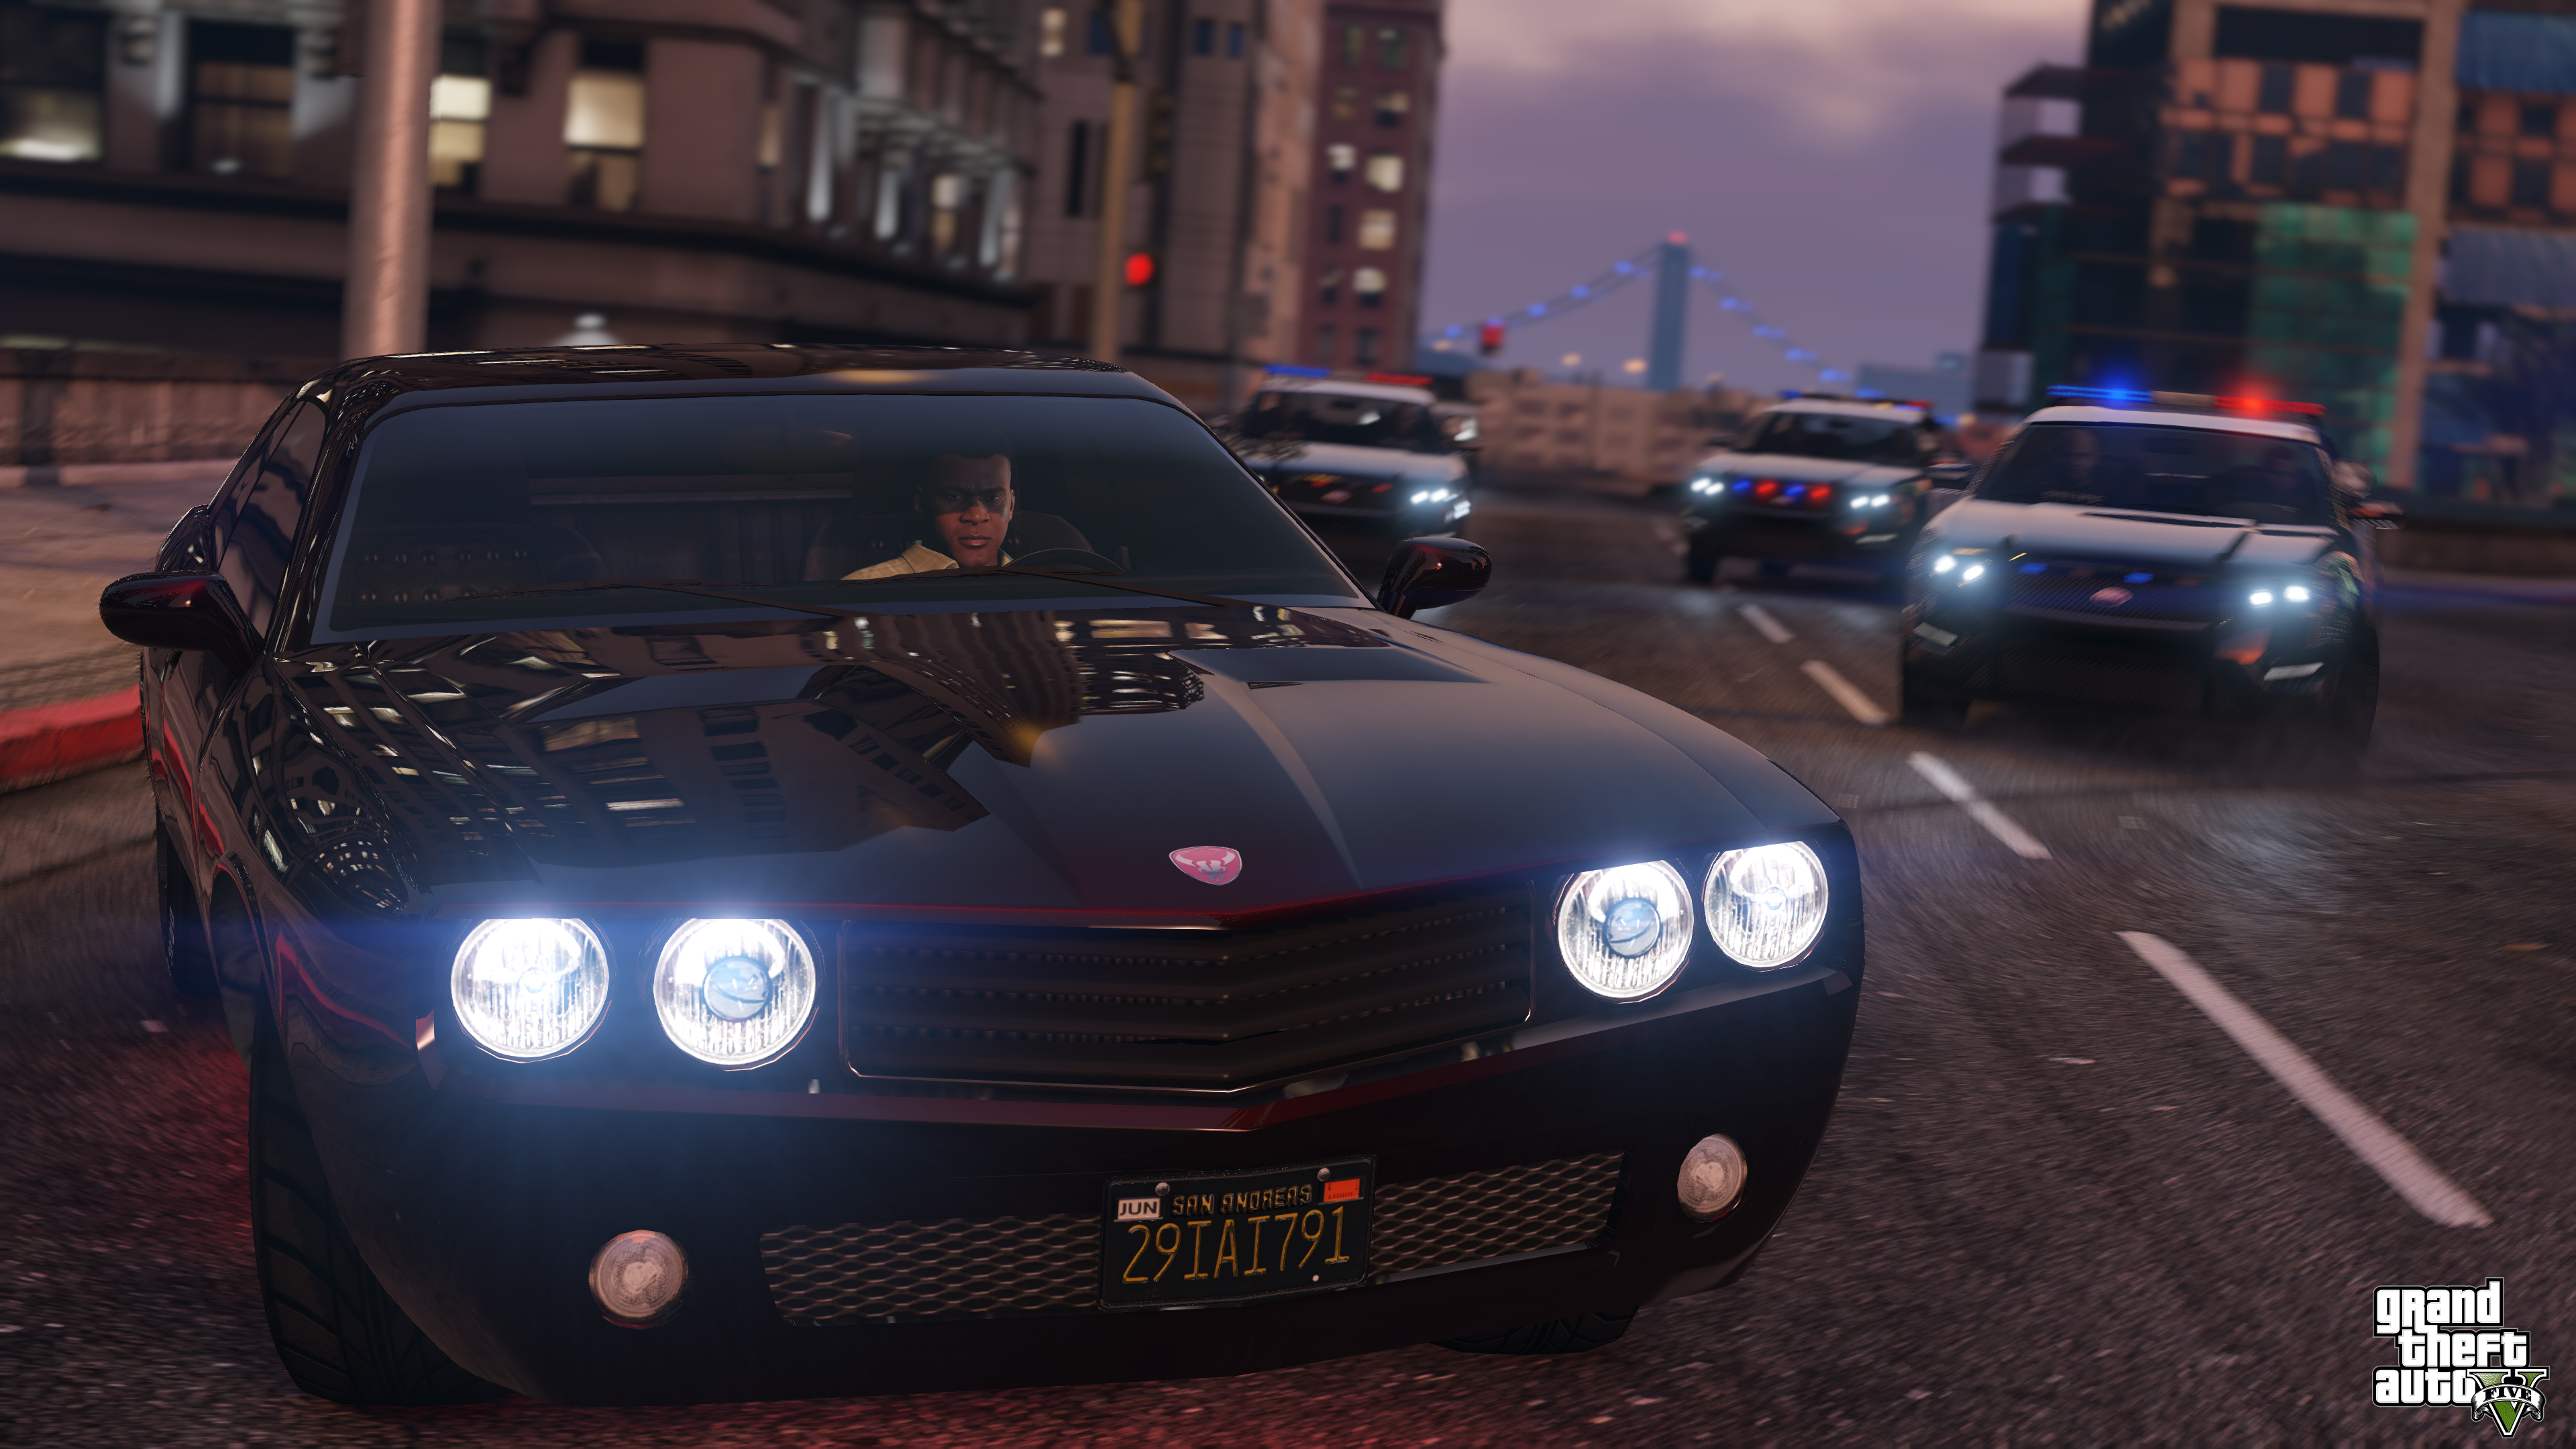 GTA V's NoPixel roleplay server may have just lost its chief